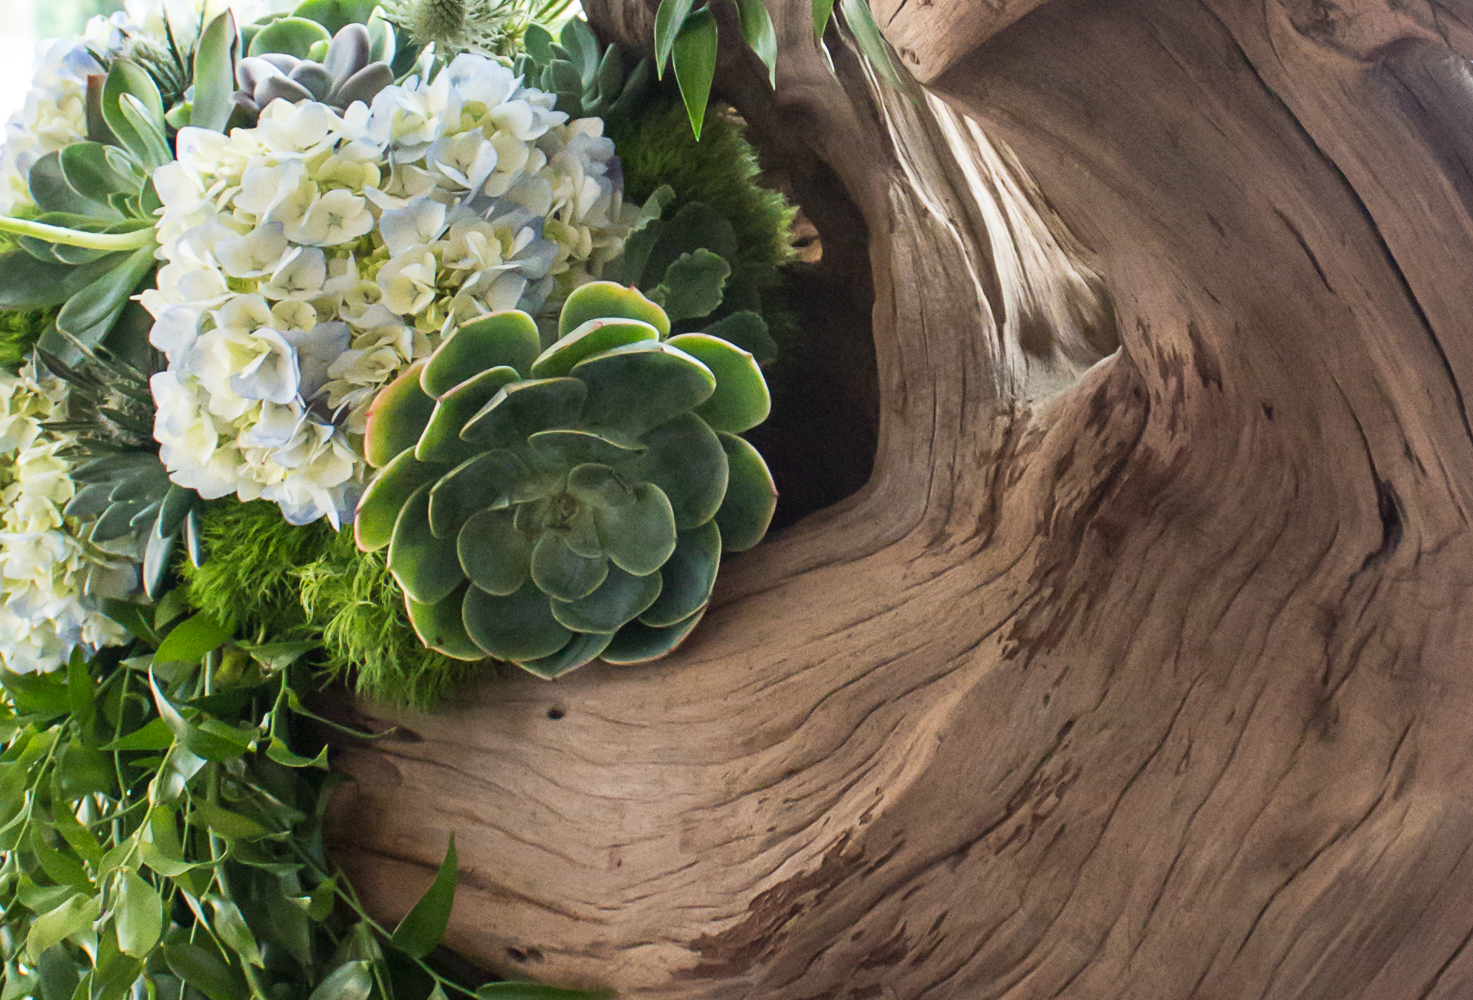 Cedar Driftwood Sculpture by Pebble and Branch Floral Design